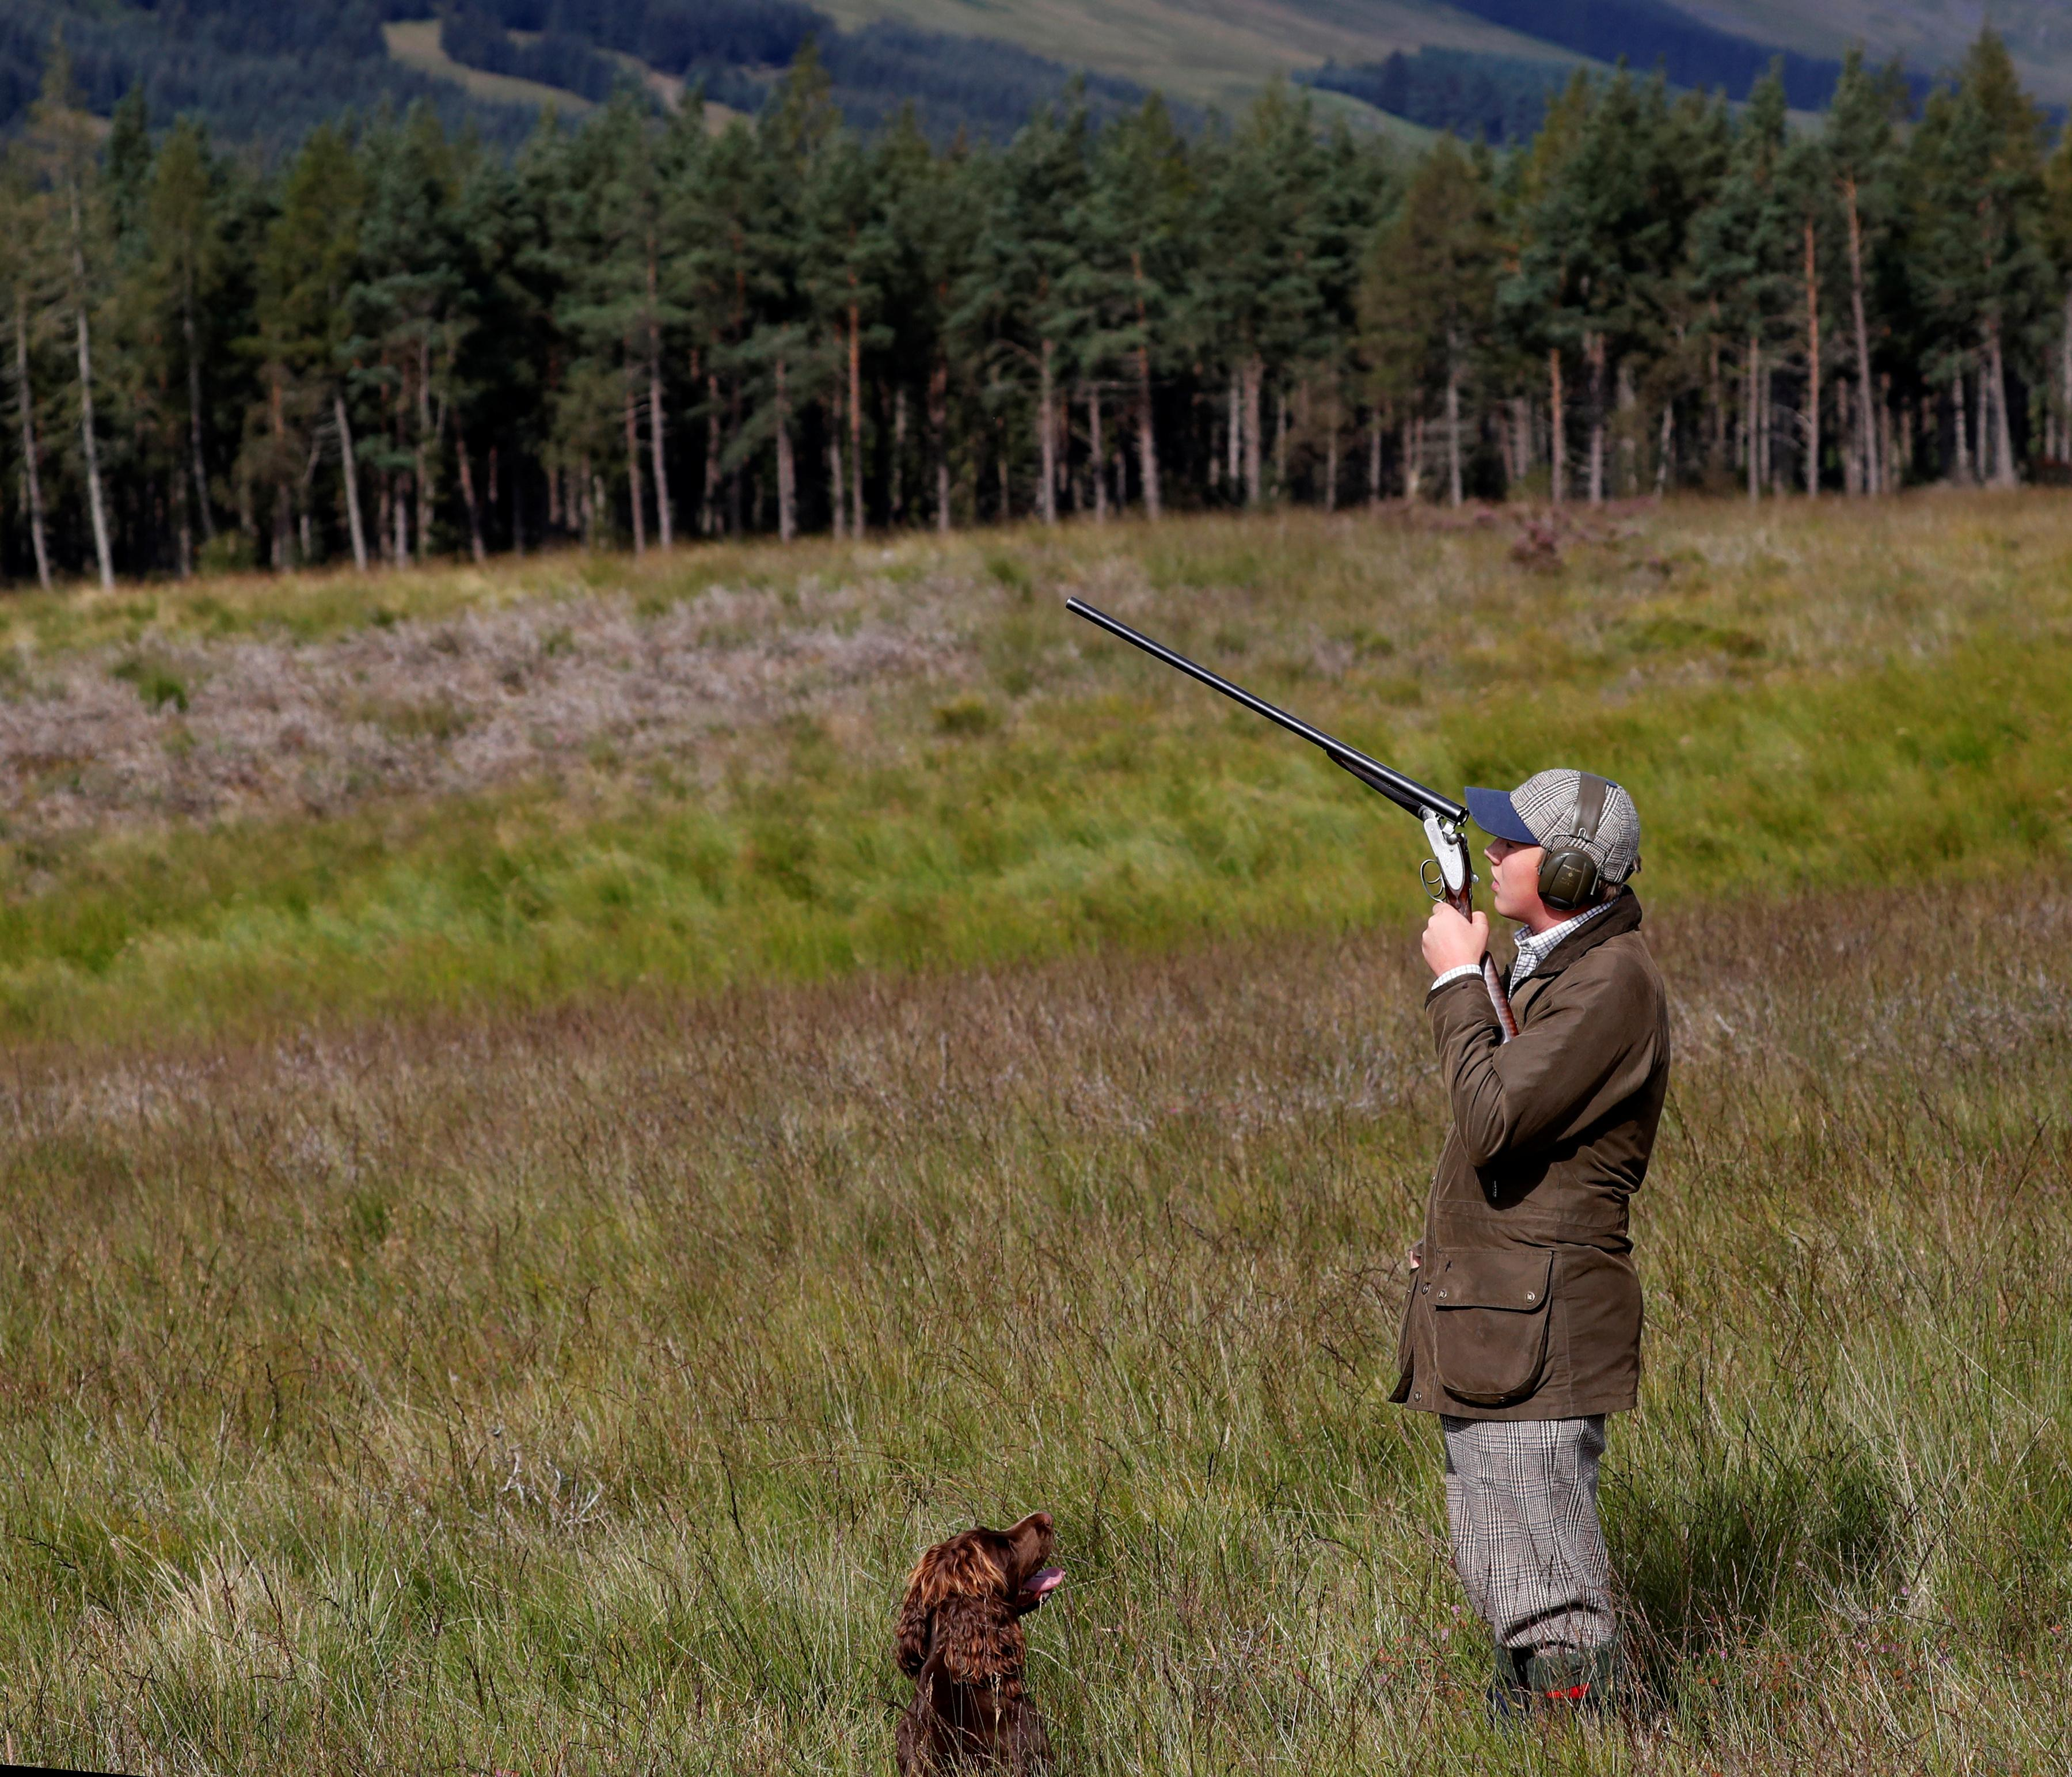 Labour calls for grouse shooting review as 'Glorious Twelfth' begins